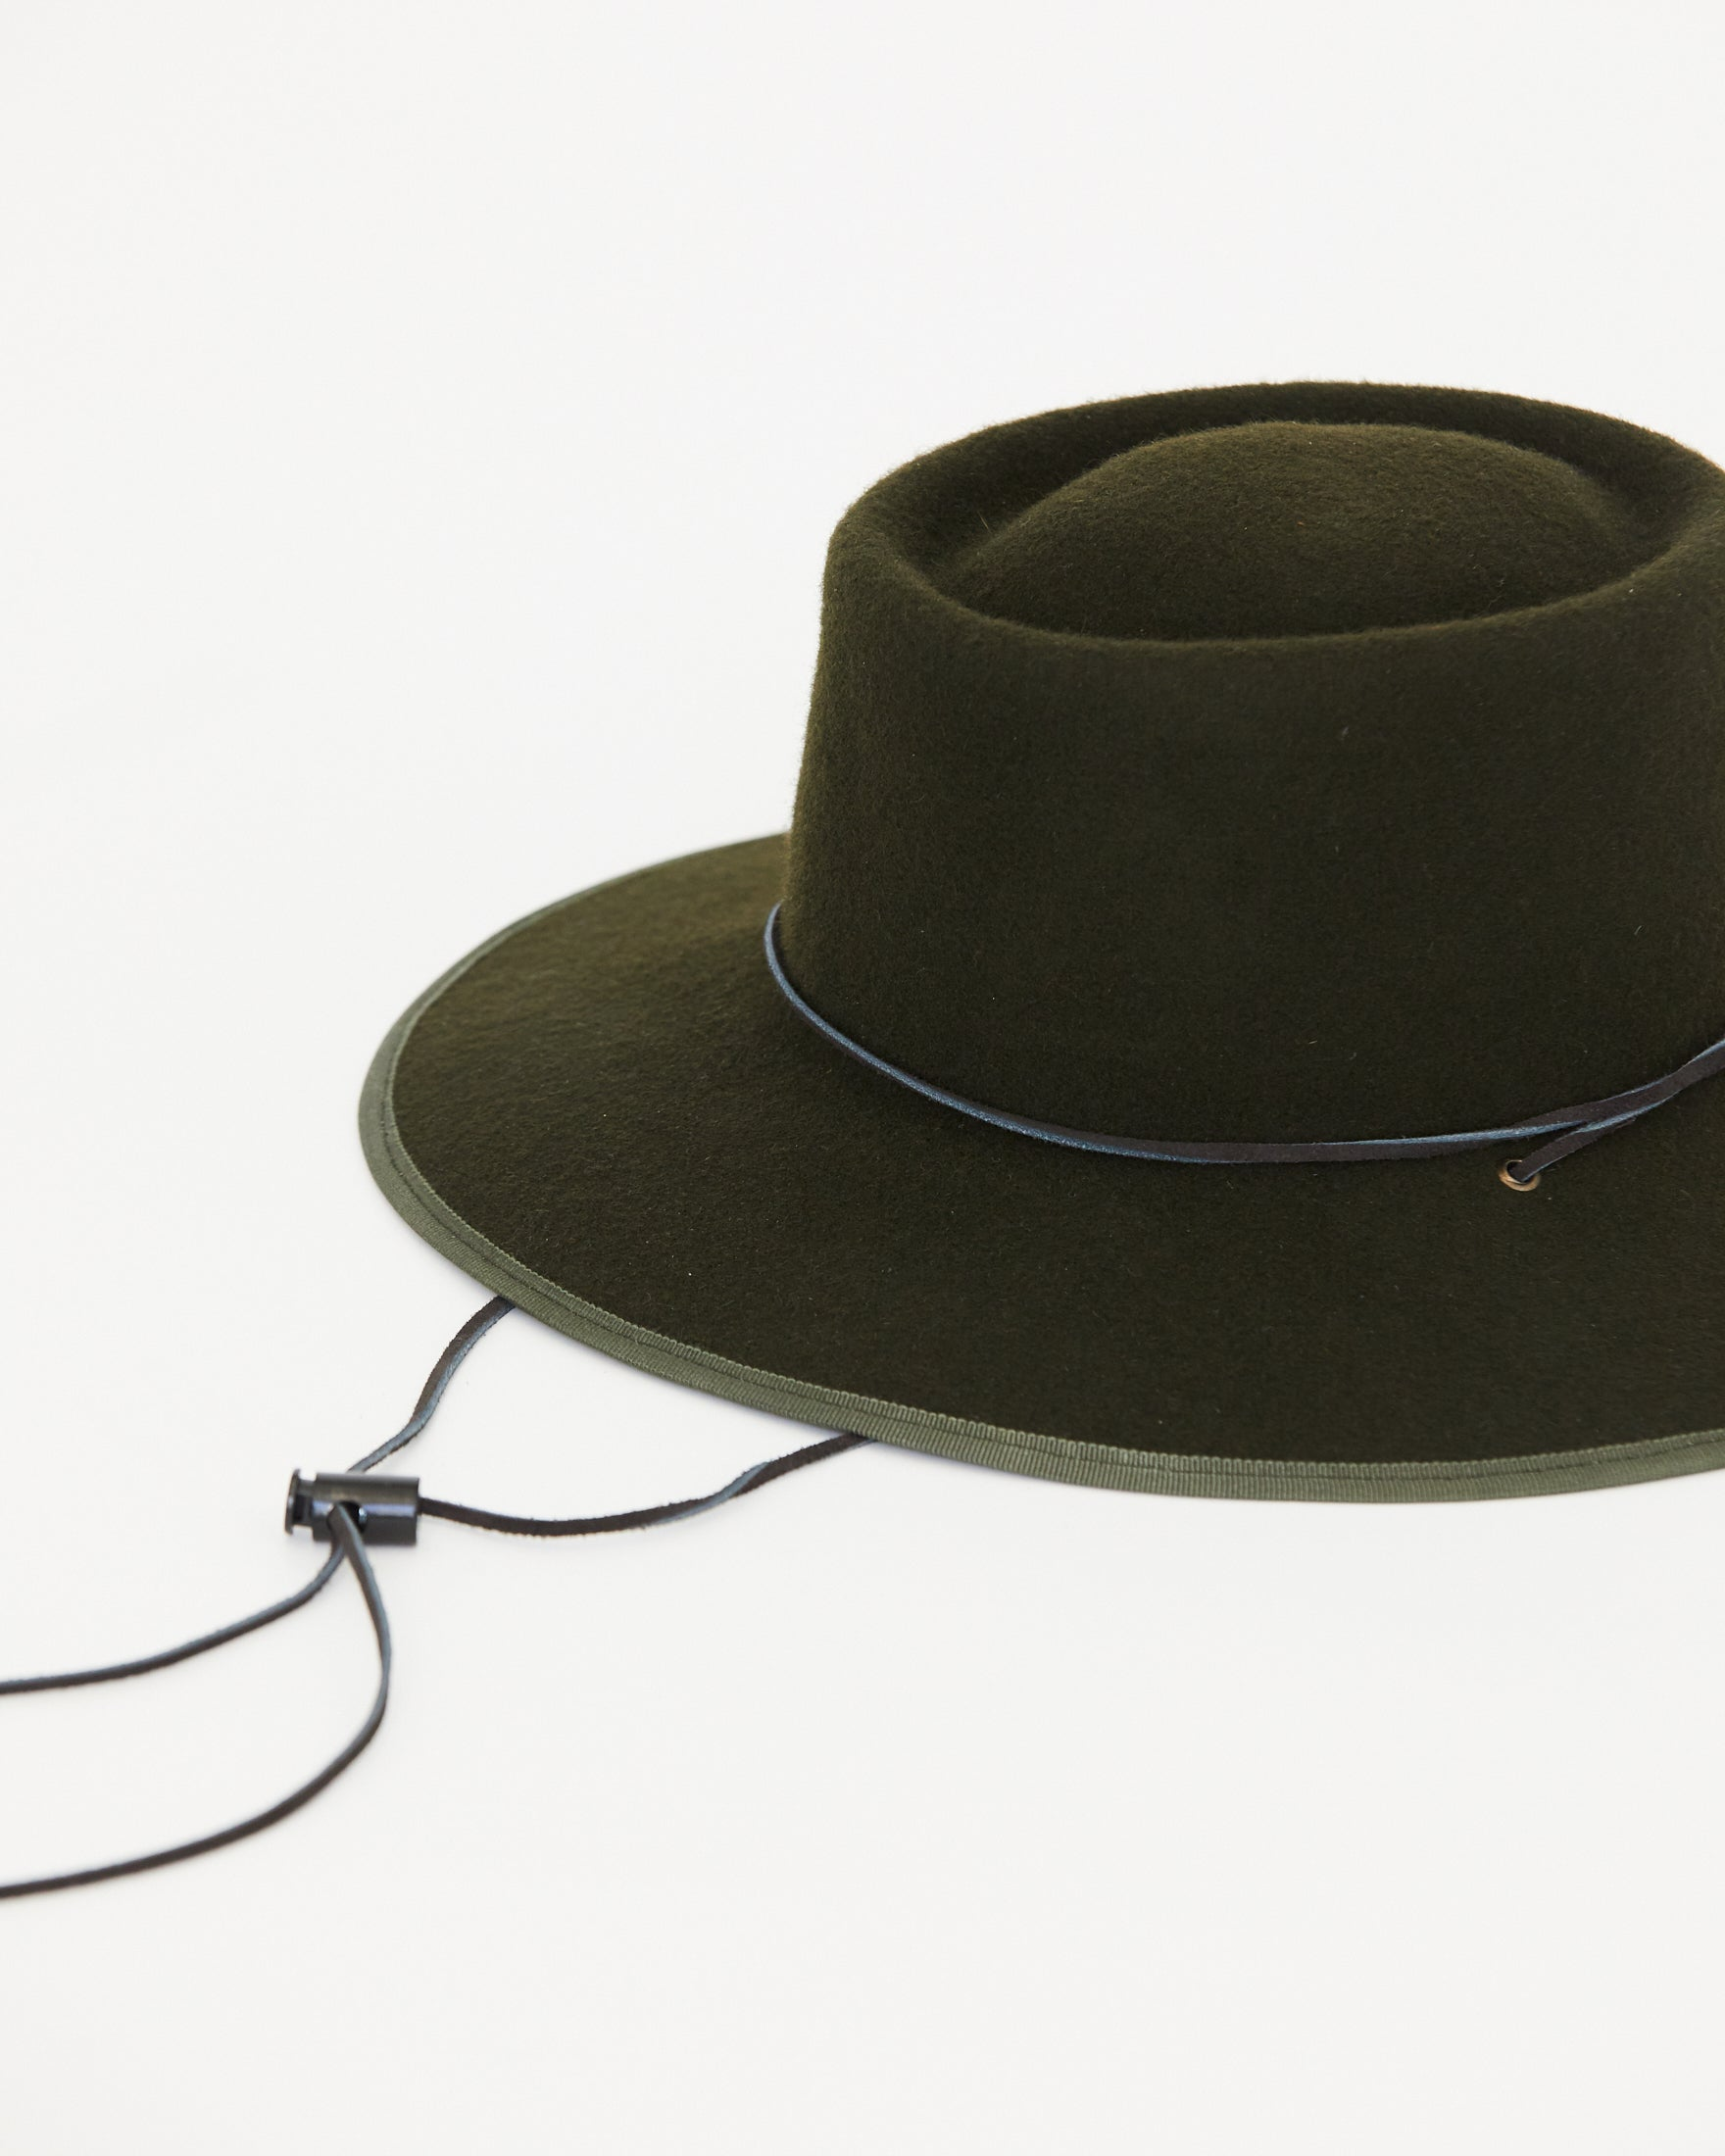 BROOKES BOSWELL - ALDERMAN HAT - LODEN WOOL FELT